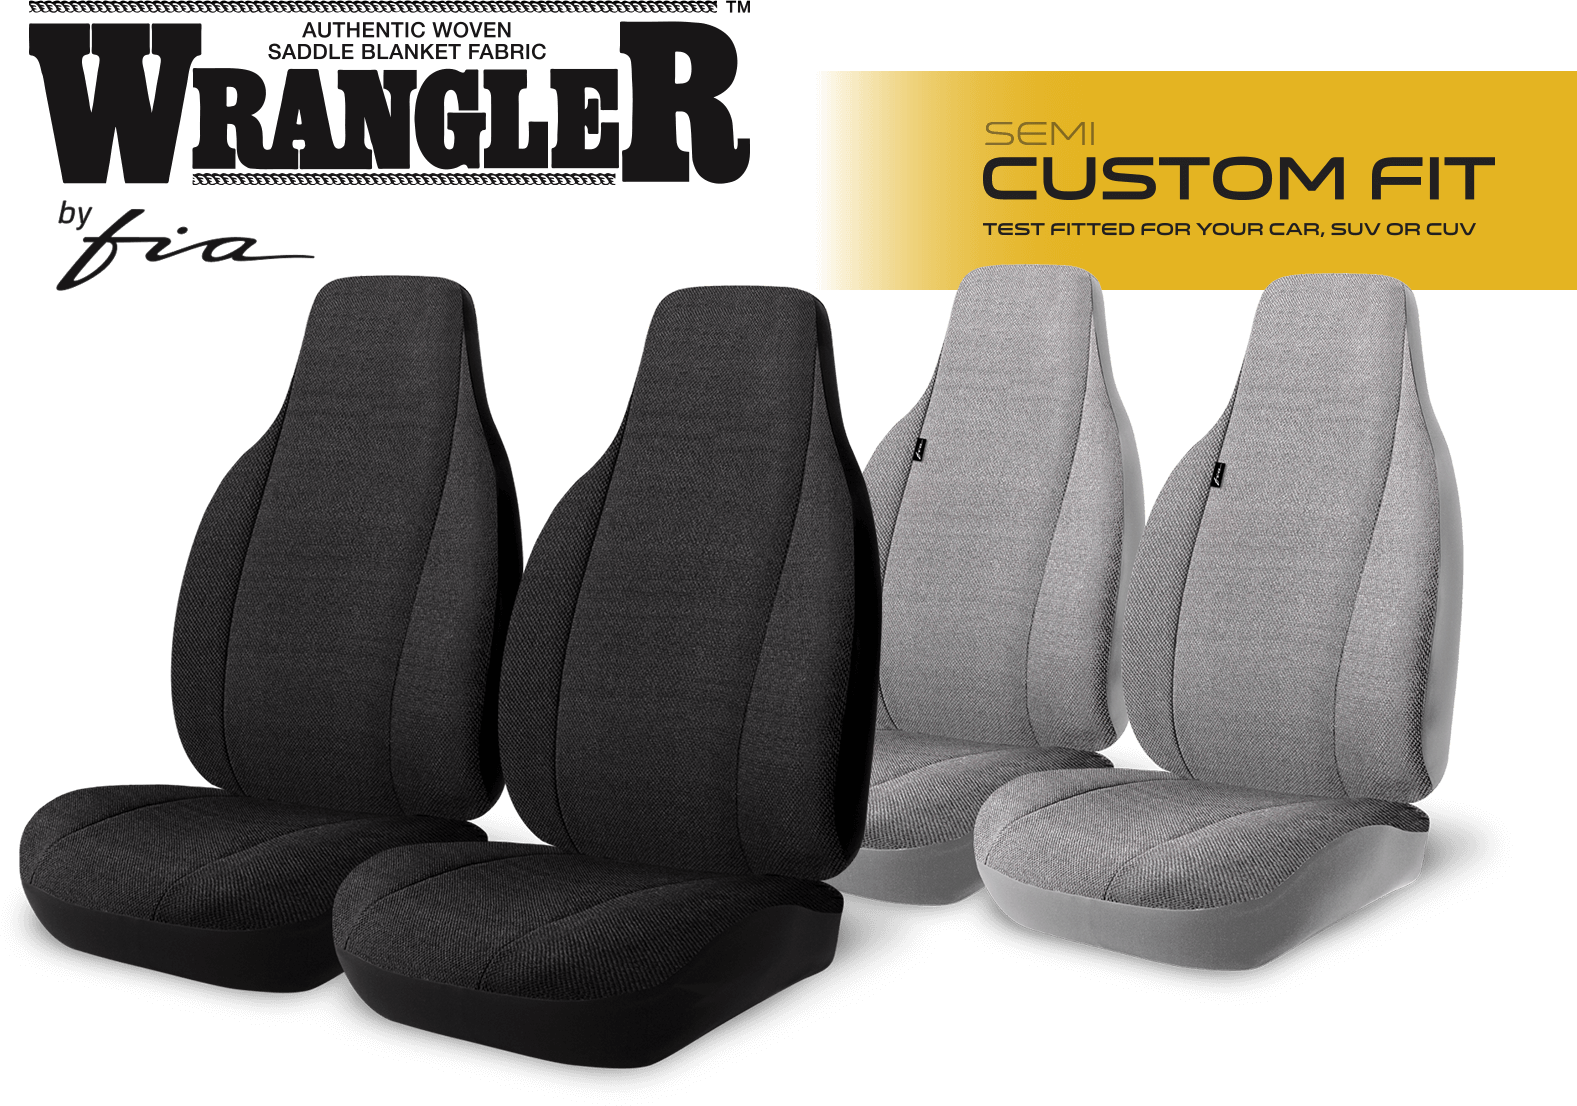 TRS400 Series Authentic Saddleblanket Solid Colours Semi Custom Fit Car Seat Covers